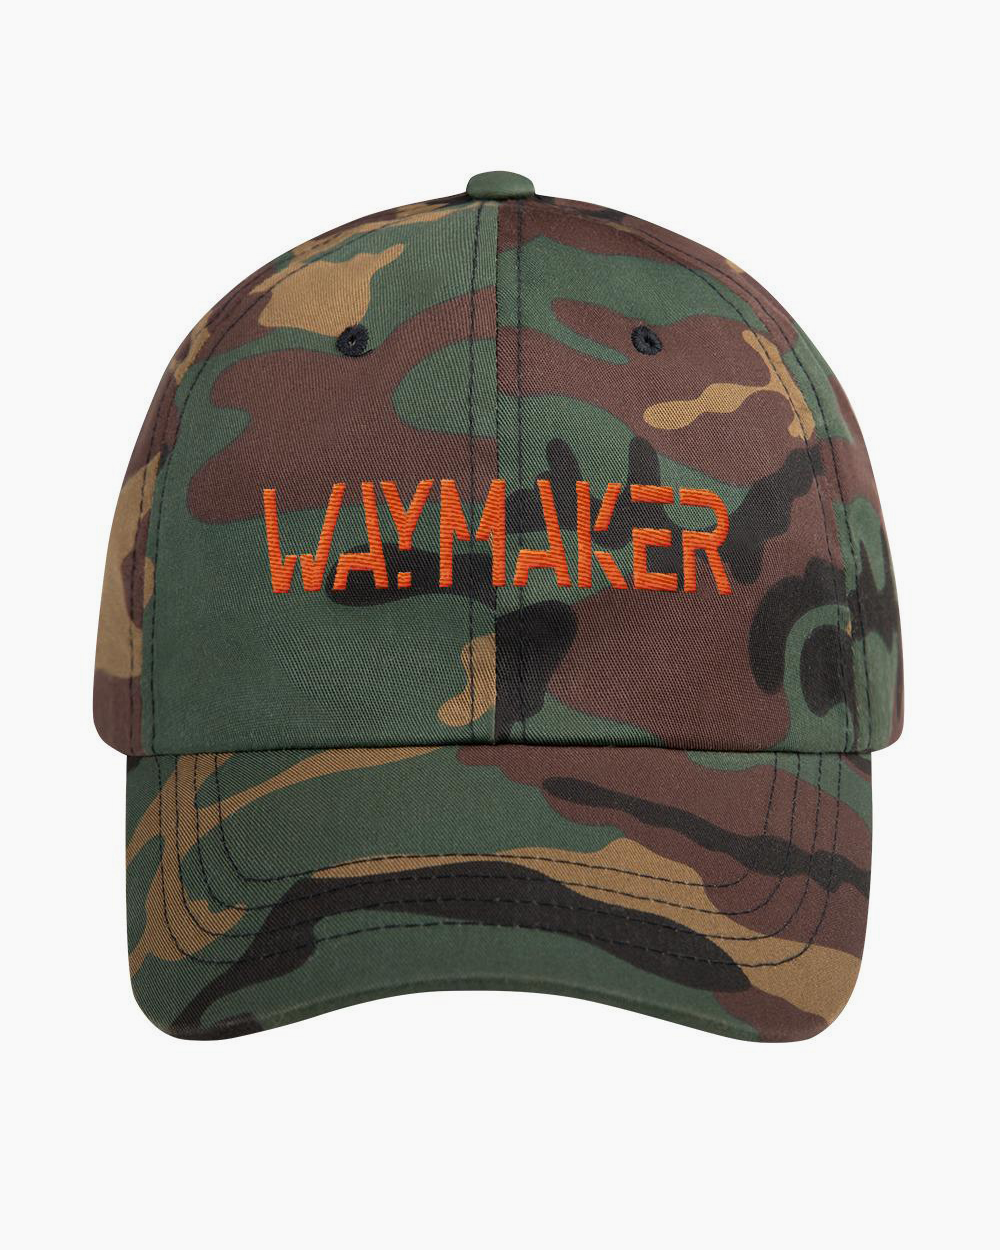 WAYMAKER - Classic Dad Hat (Camo)